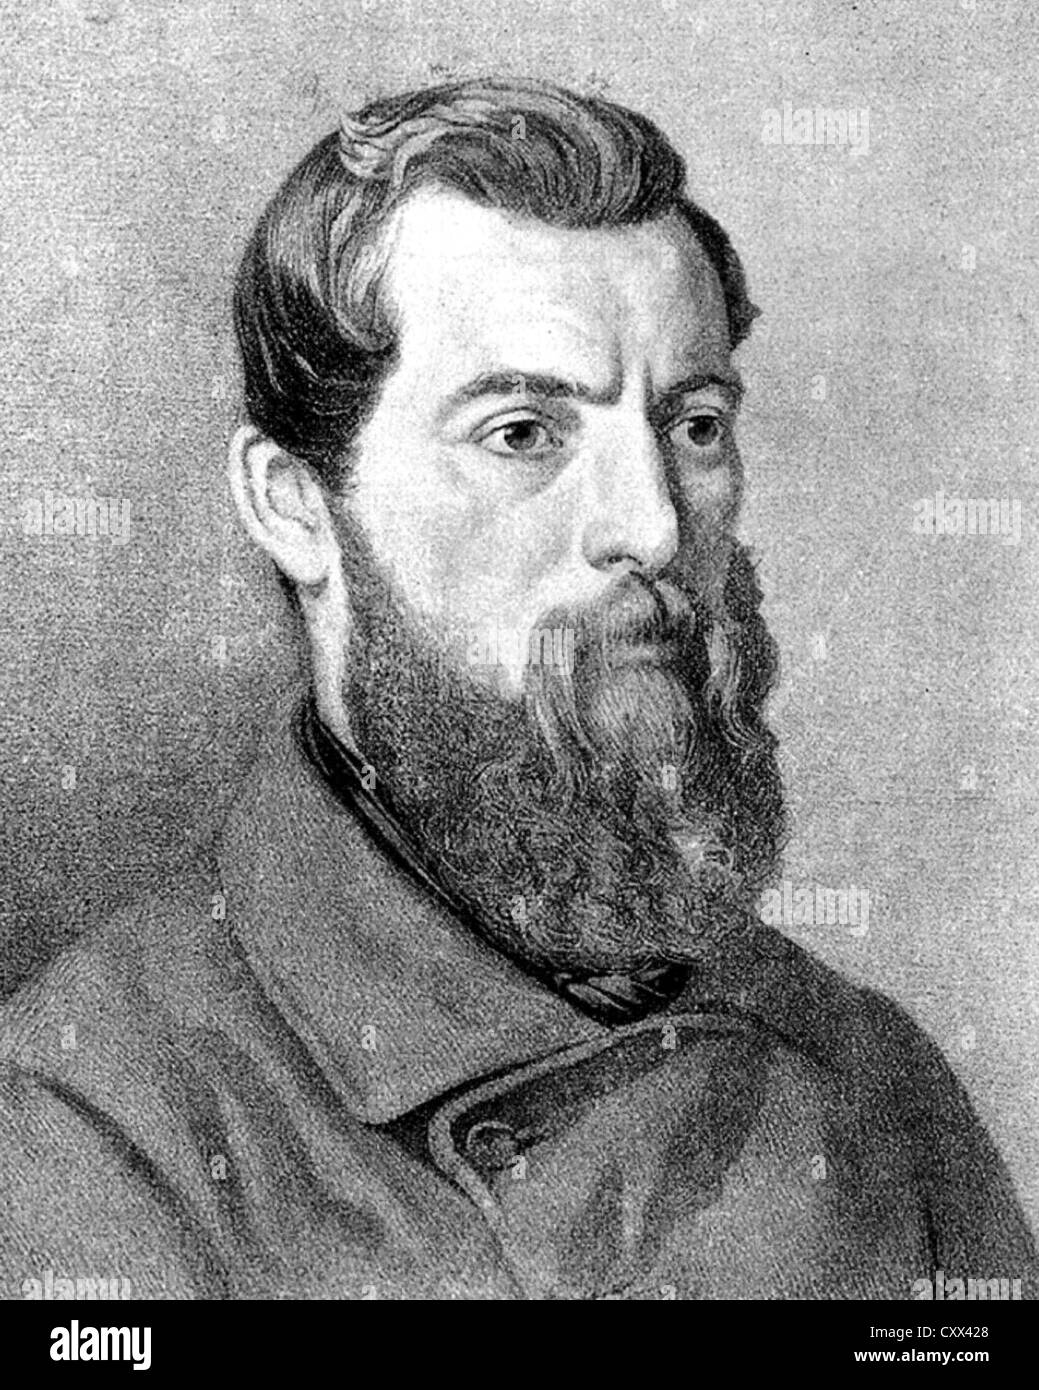 LUDWIG FEUERBACH (1804-1872) German philosopher and anthropologist - Stock Image